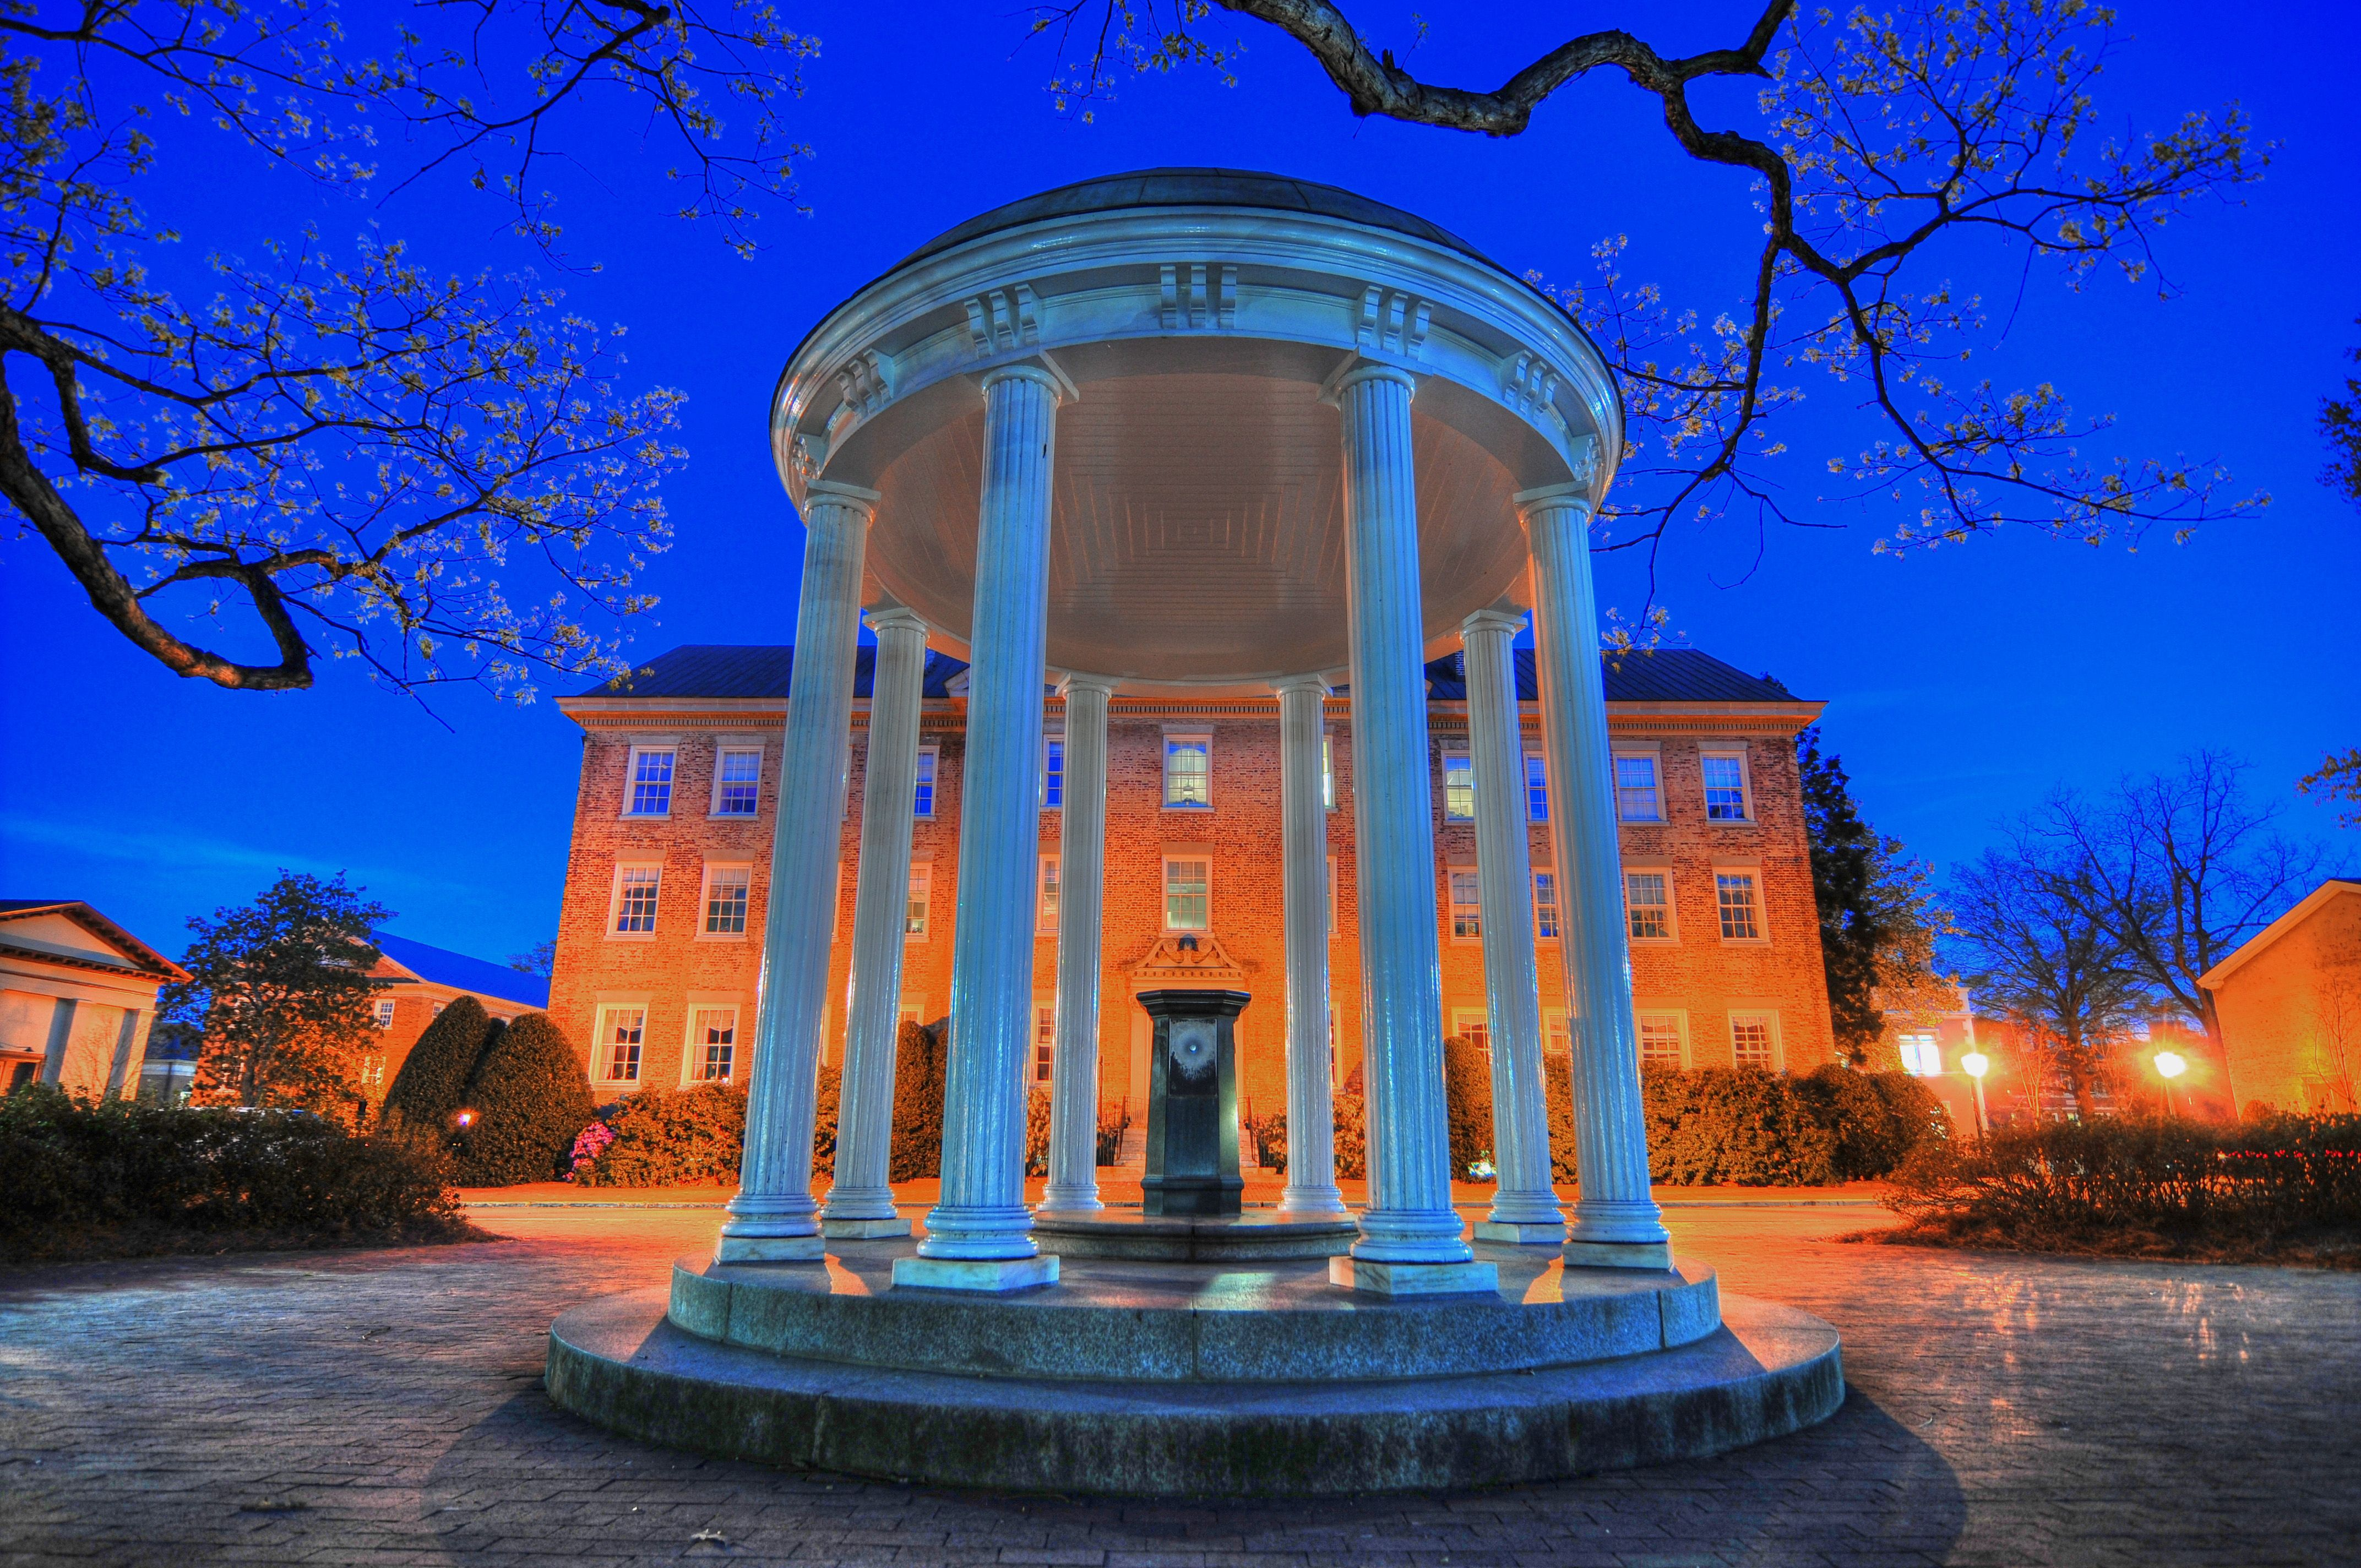 5 Things All Unc Students Miss When They Re Home For Break Chapel Hill North Carolina Unc Chapel Hill University Of North Carolina